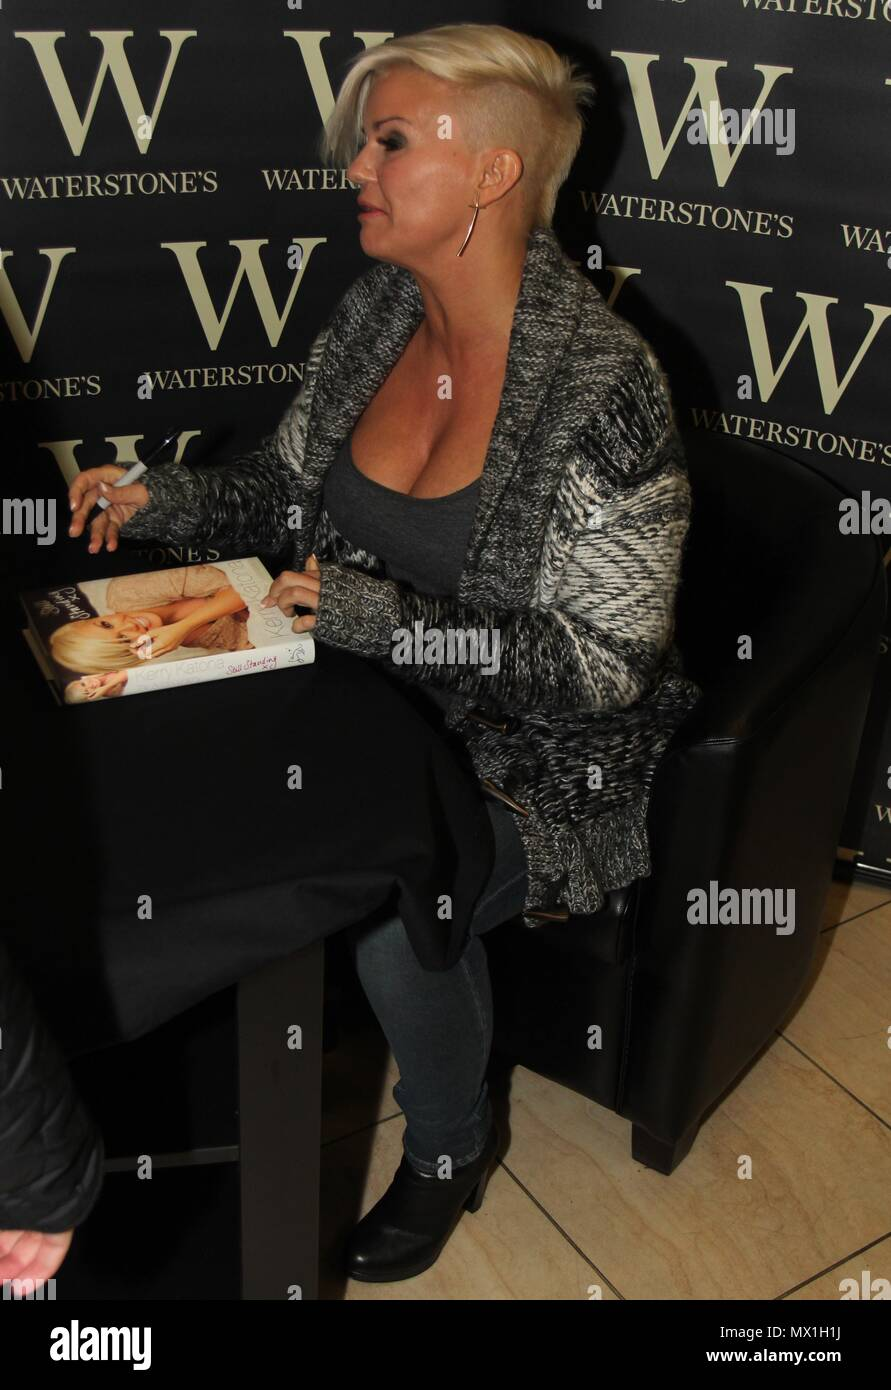 Liverpool, uk, kerry Katona Book Signing in Birkenhead credit Ian Fairbrother/Alamy Stock Photos Stock Photo